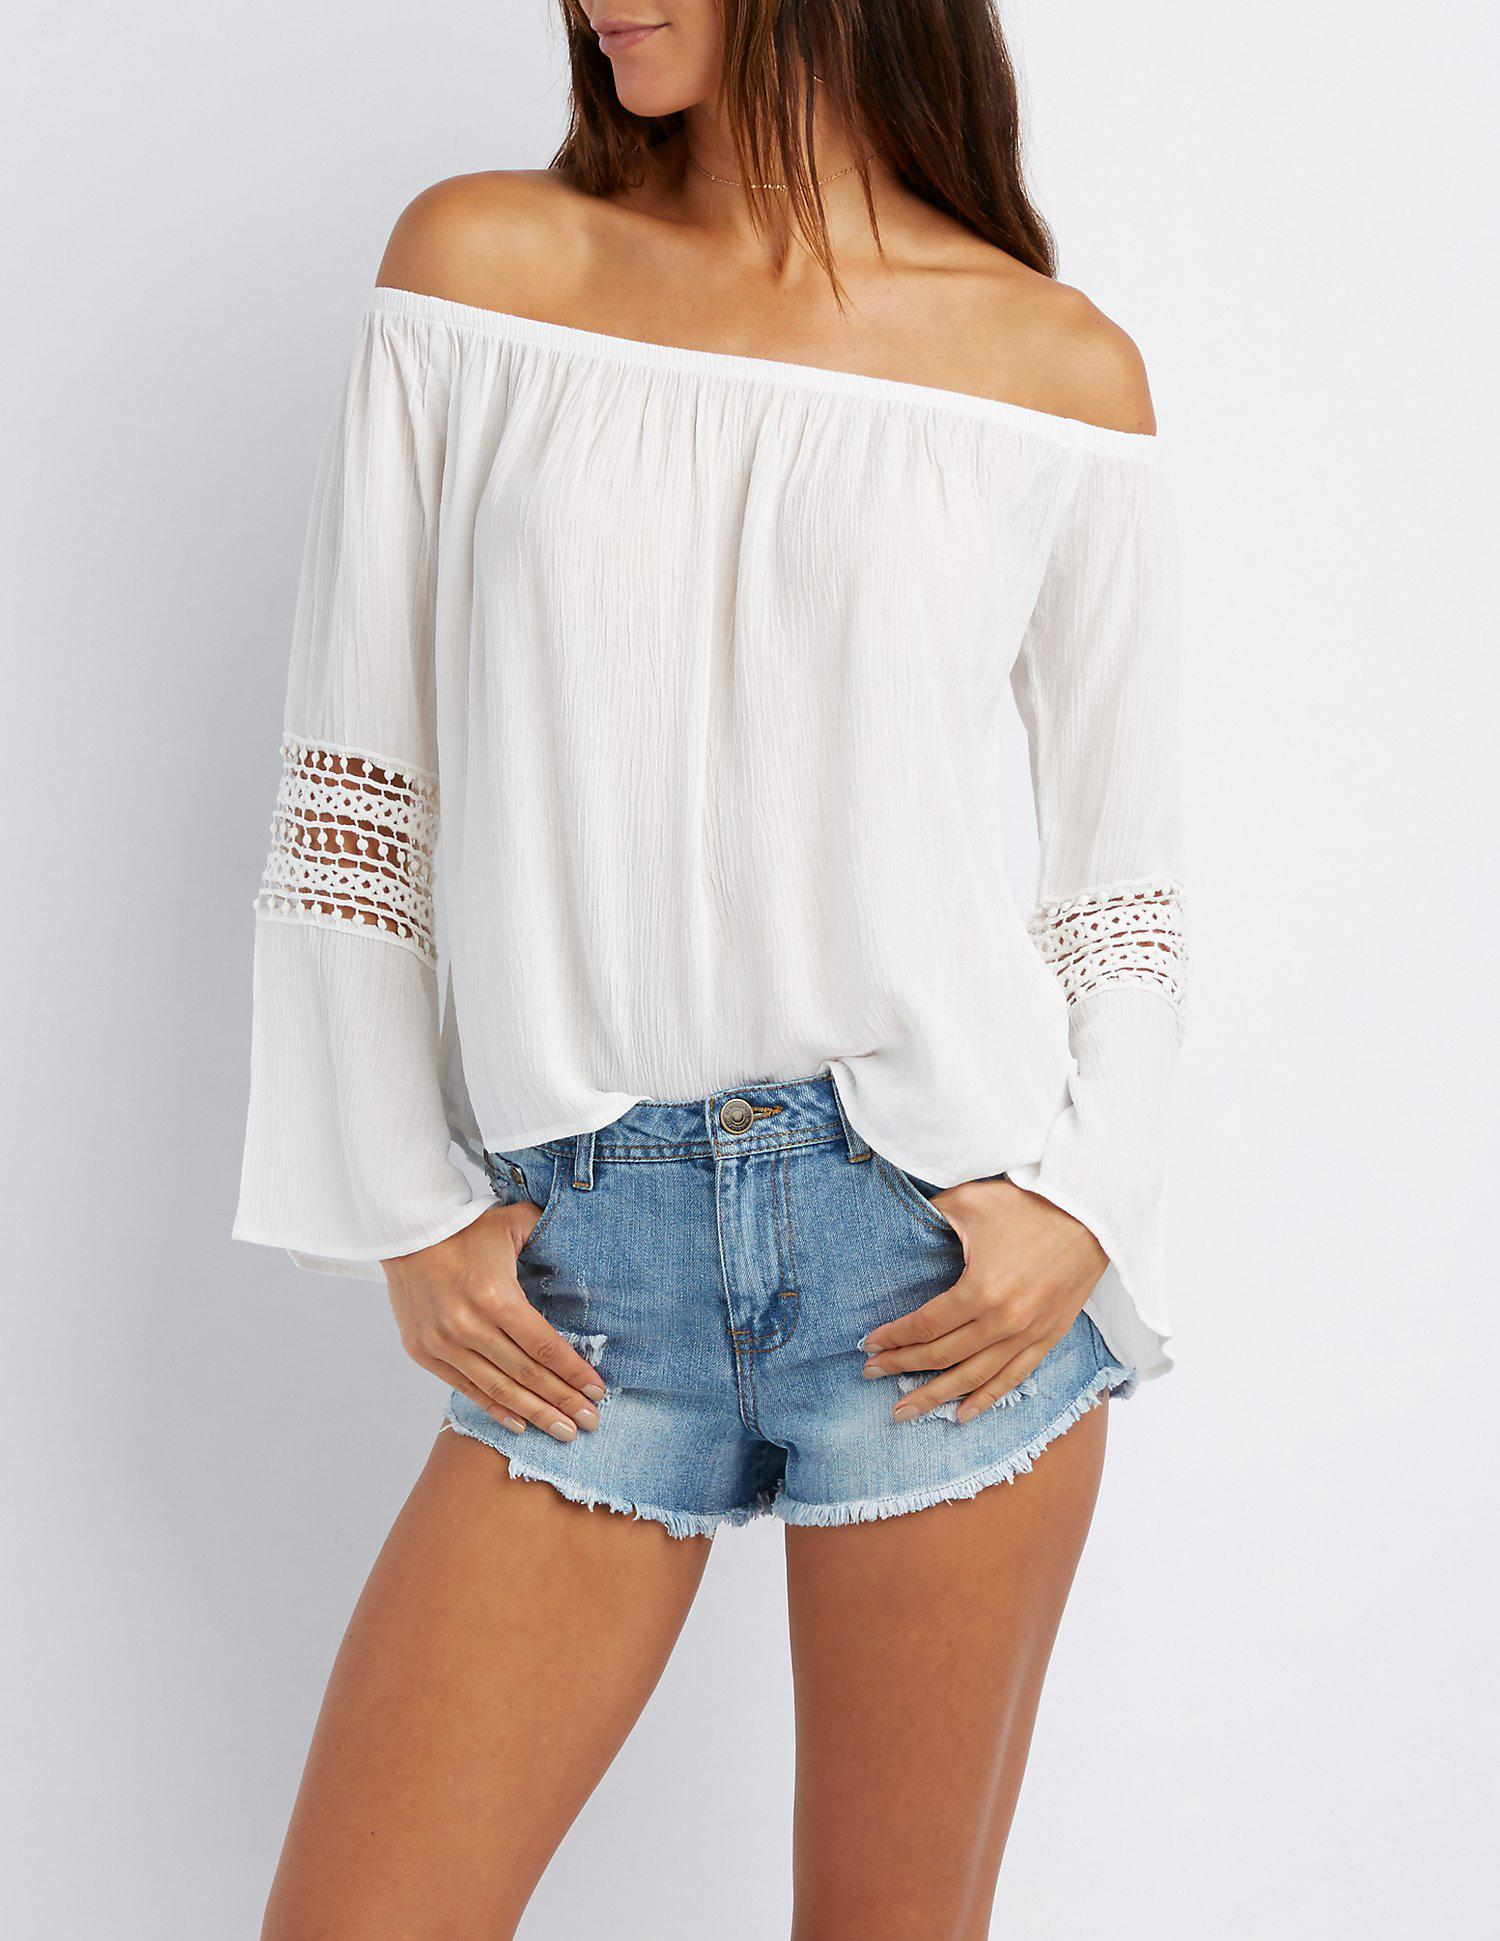 159f52b8ca1a8 Lyst - Charlotte Russe Crochet-inset Off-the-shoulder Top in White